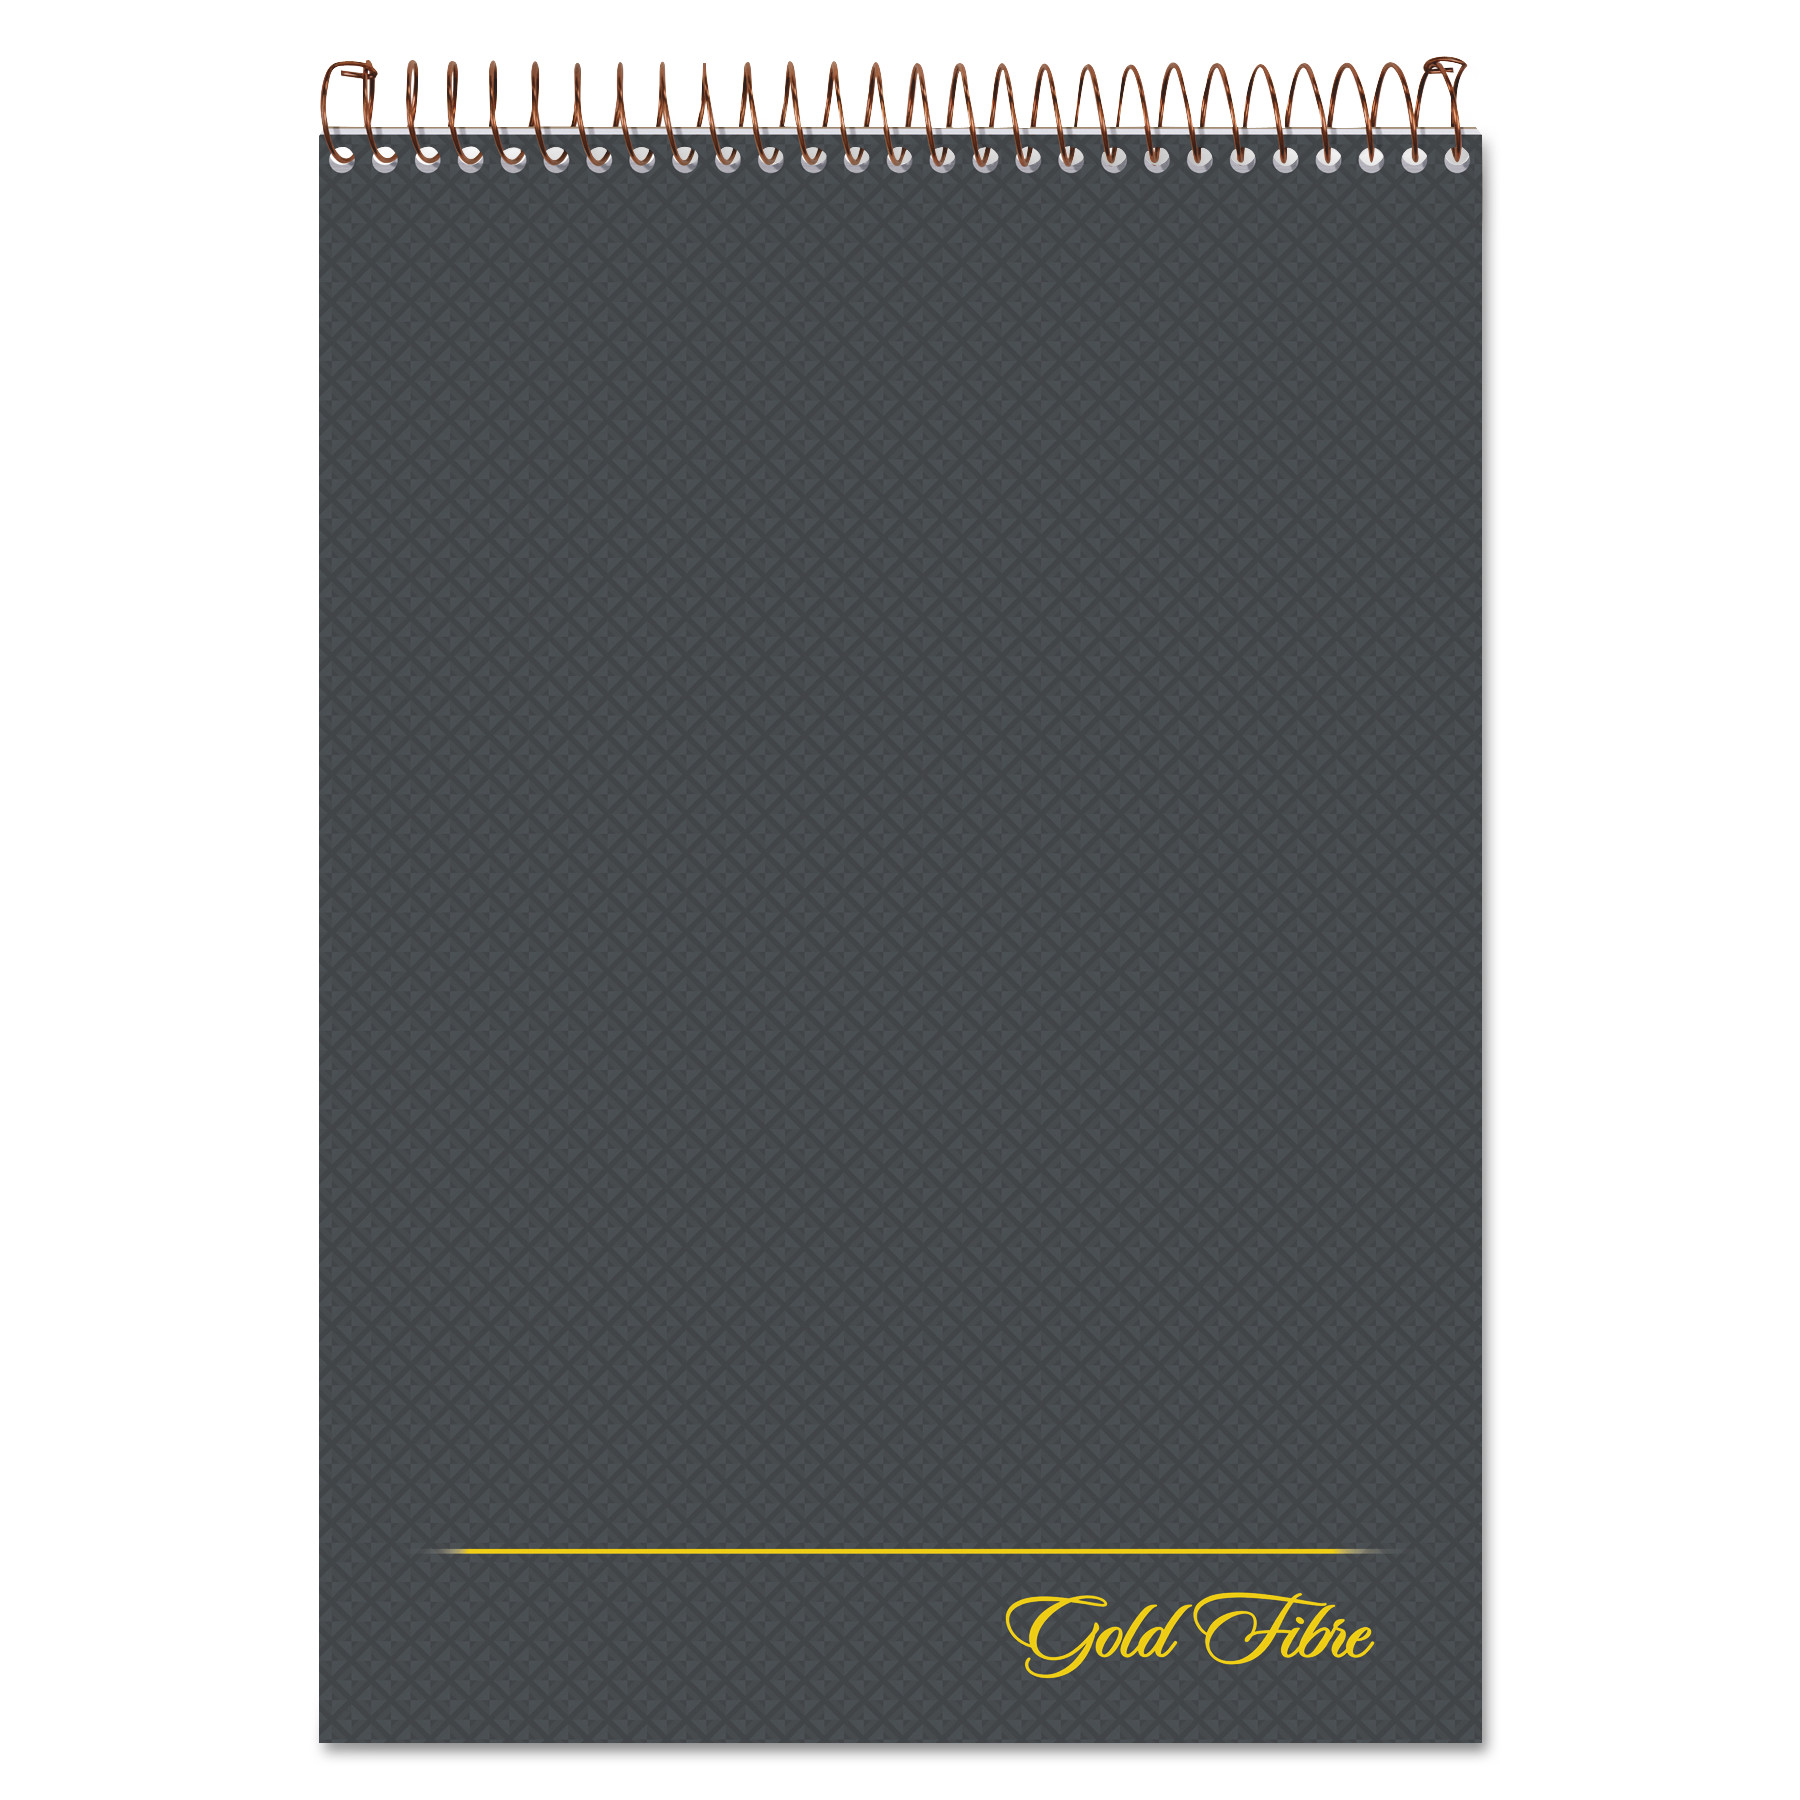 Gold Fibre Wirebound Writing Pad w  Cover, 1 Subject, Project Notes, Gray Cover, 8.5 x 11.75, 70 Pag by TOPS Products